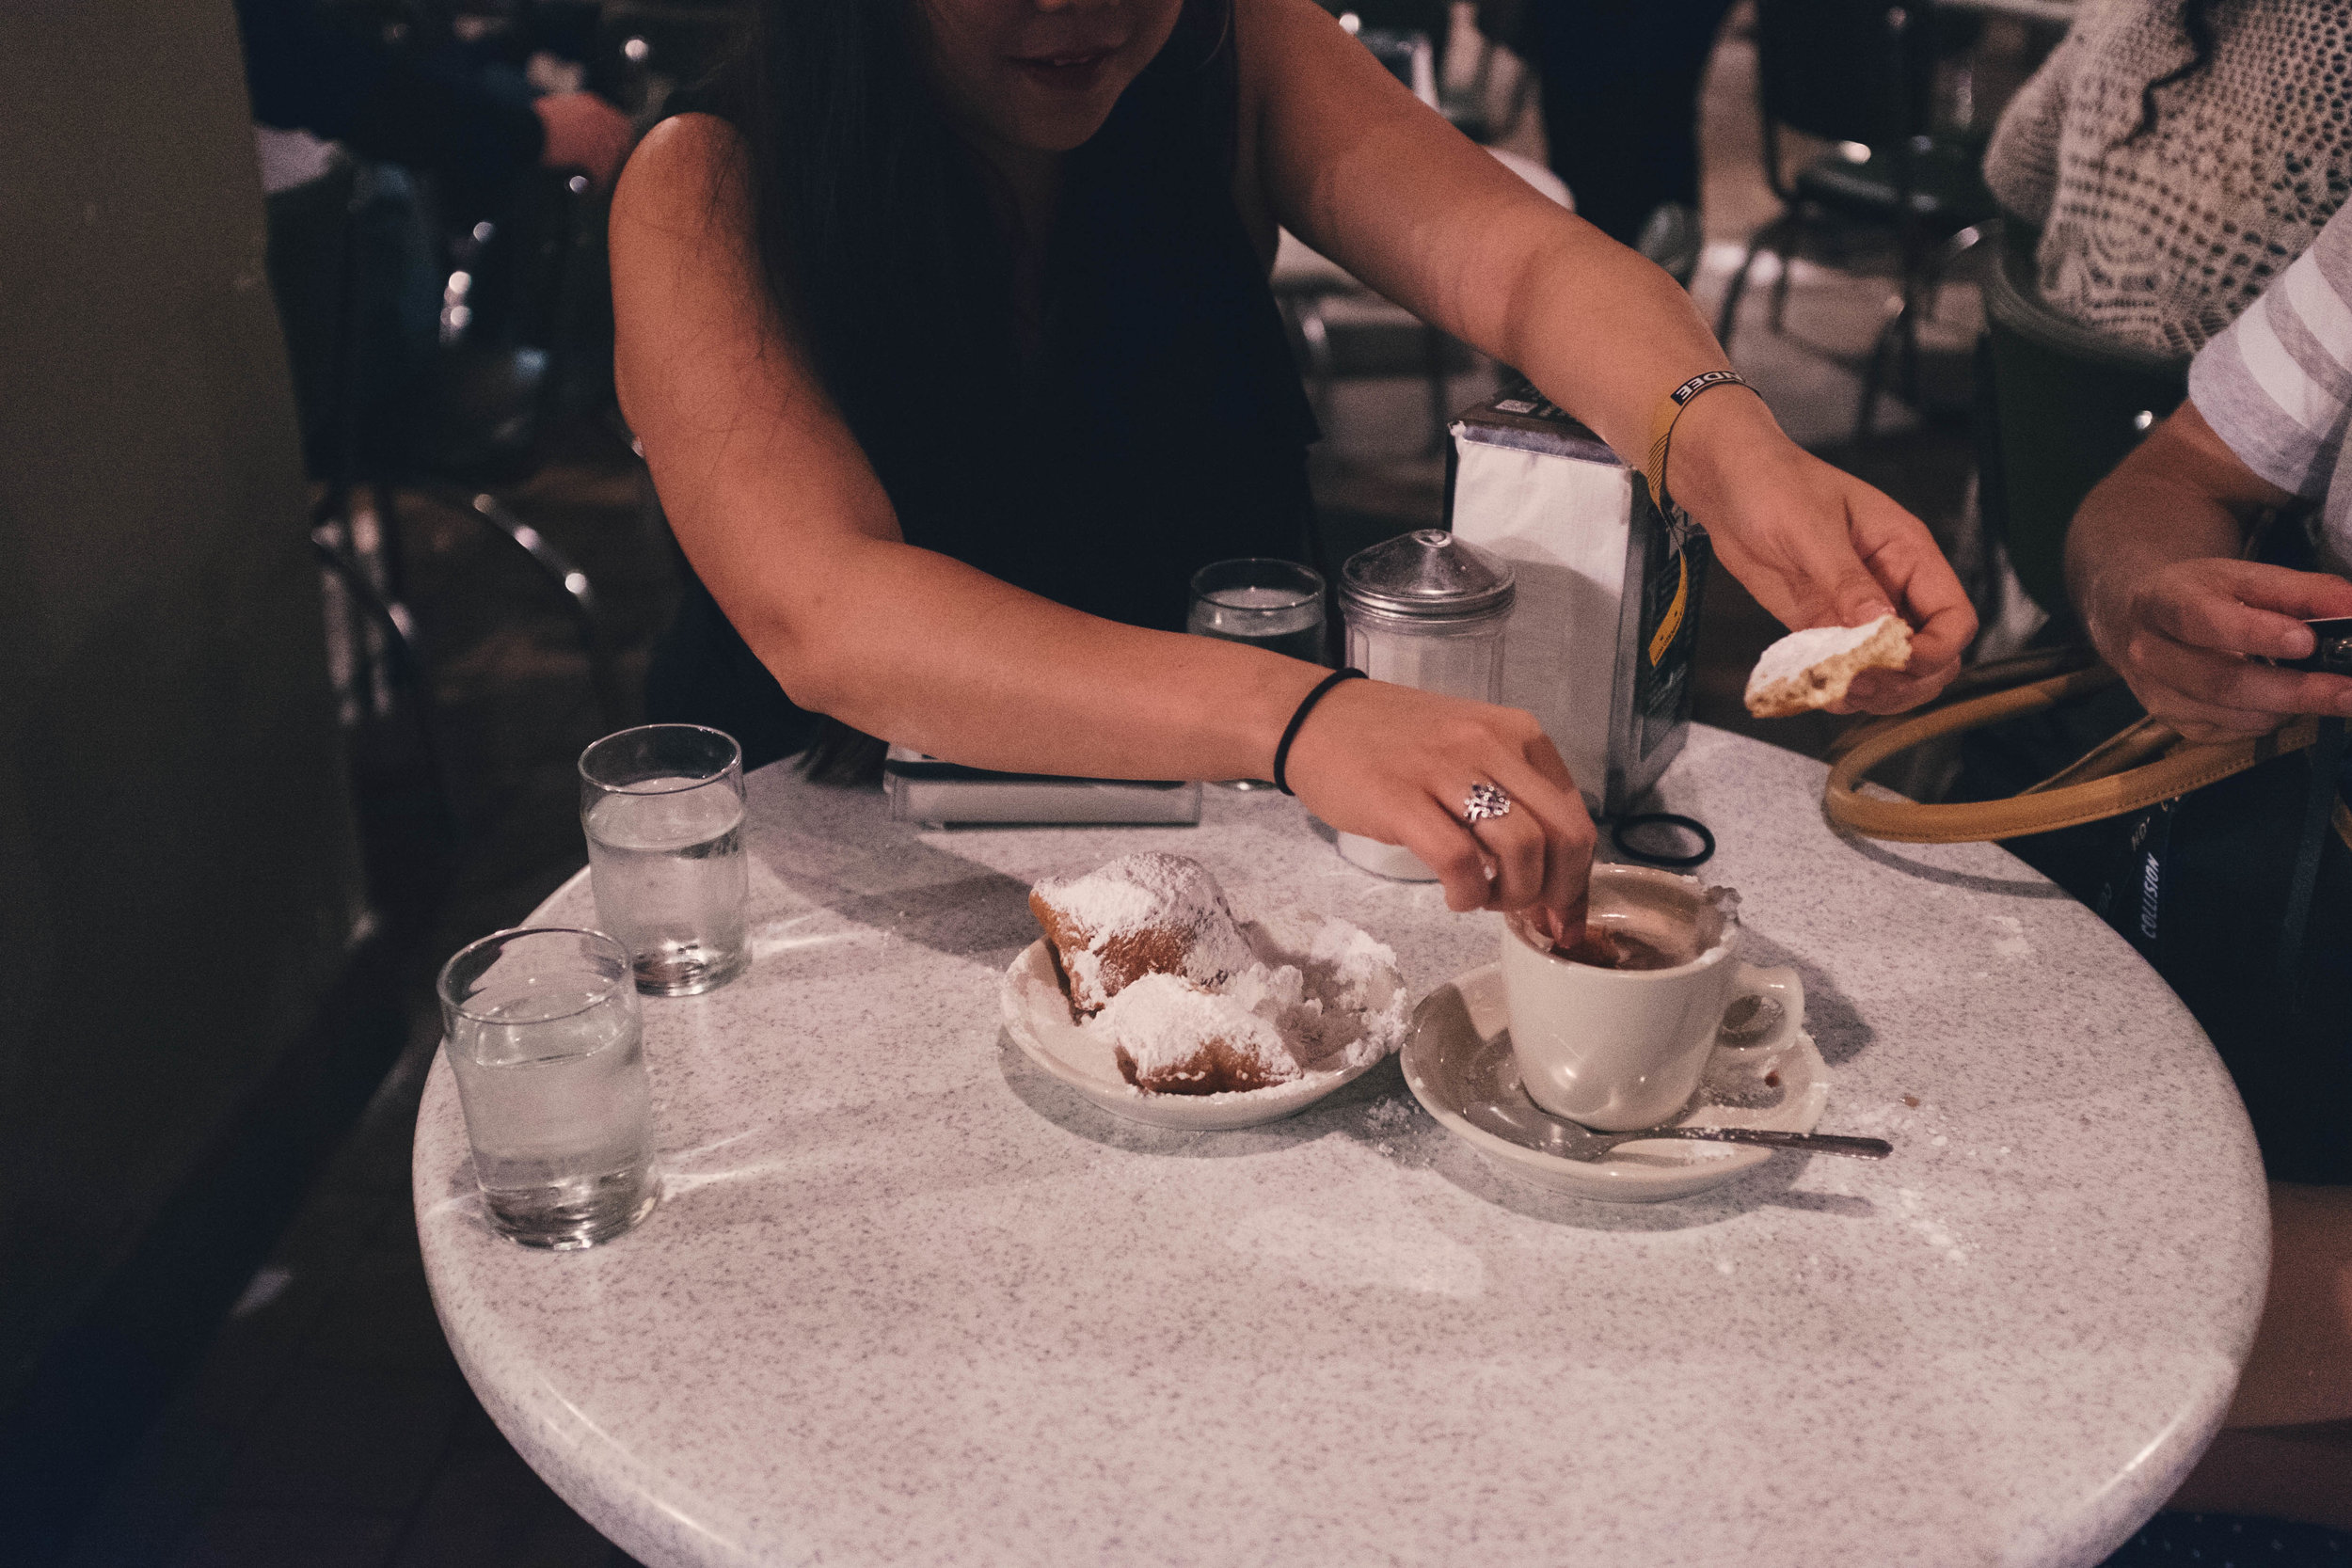 Late-night beignets after drinking all of the 'hurricane' drinks is a must! (Skip the hurricanes though).